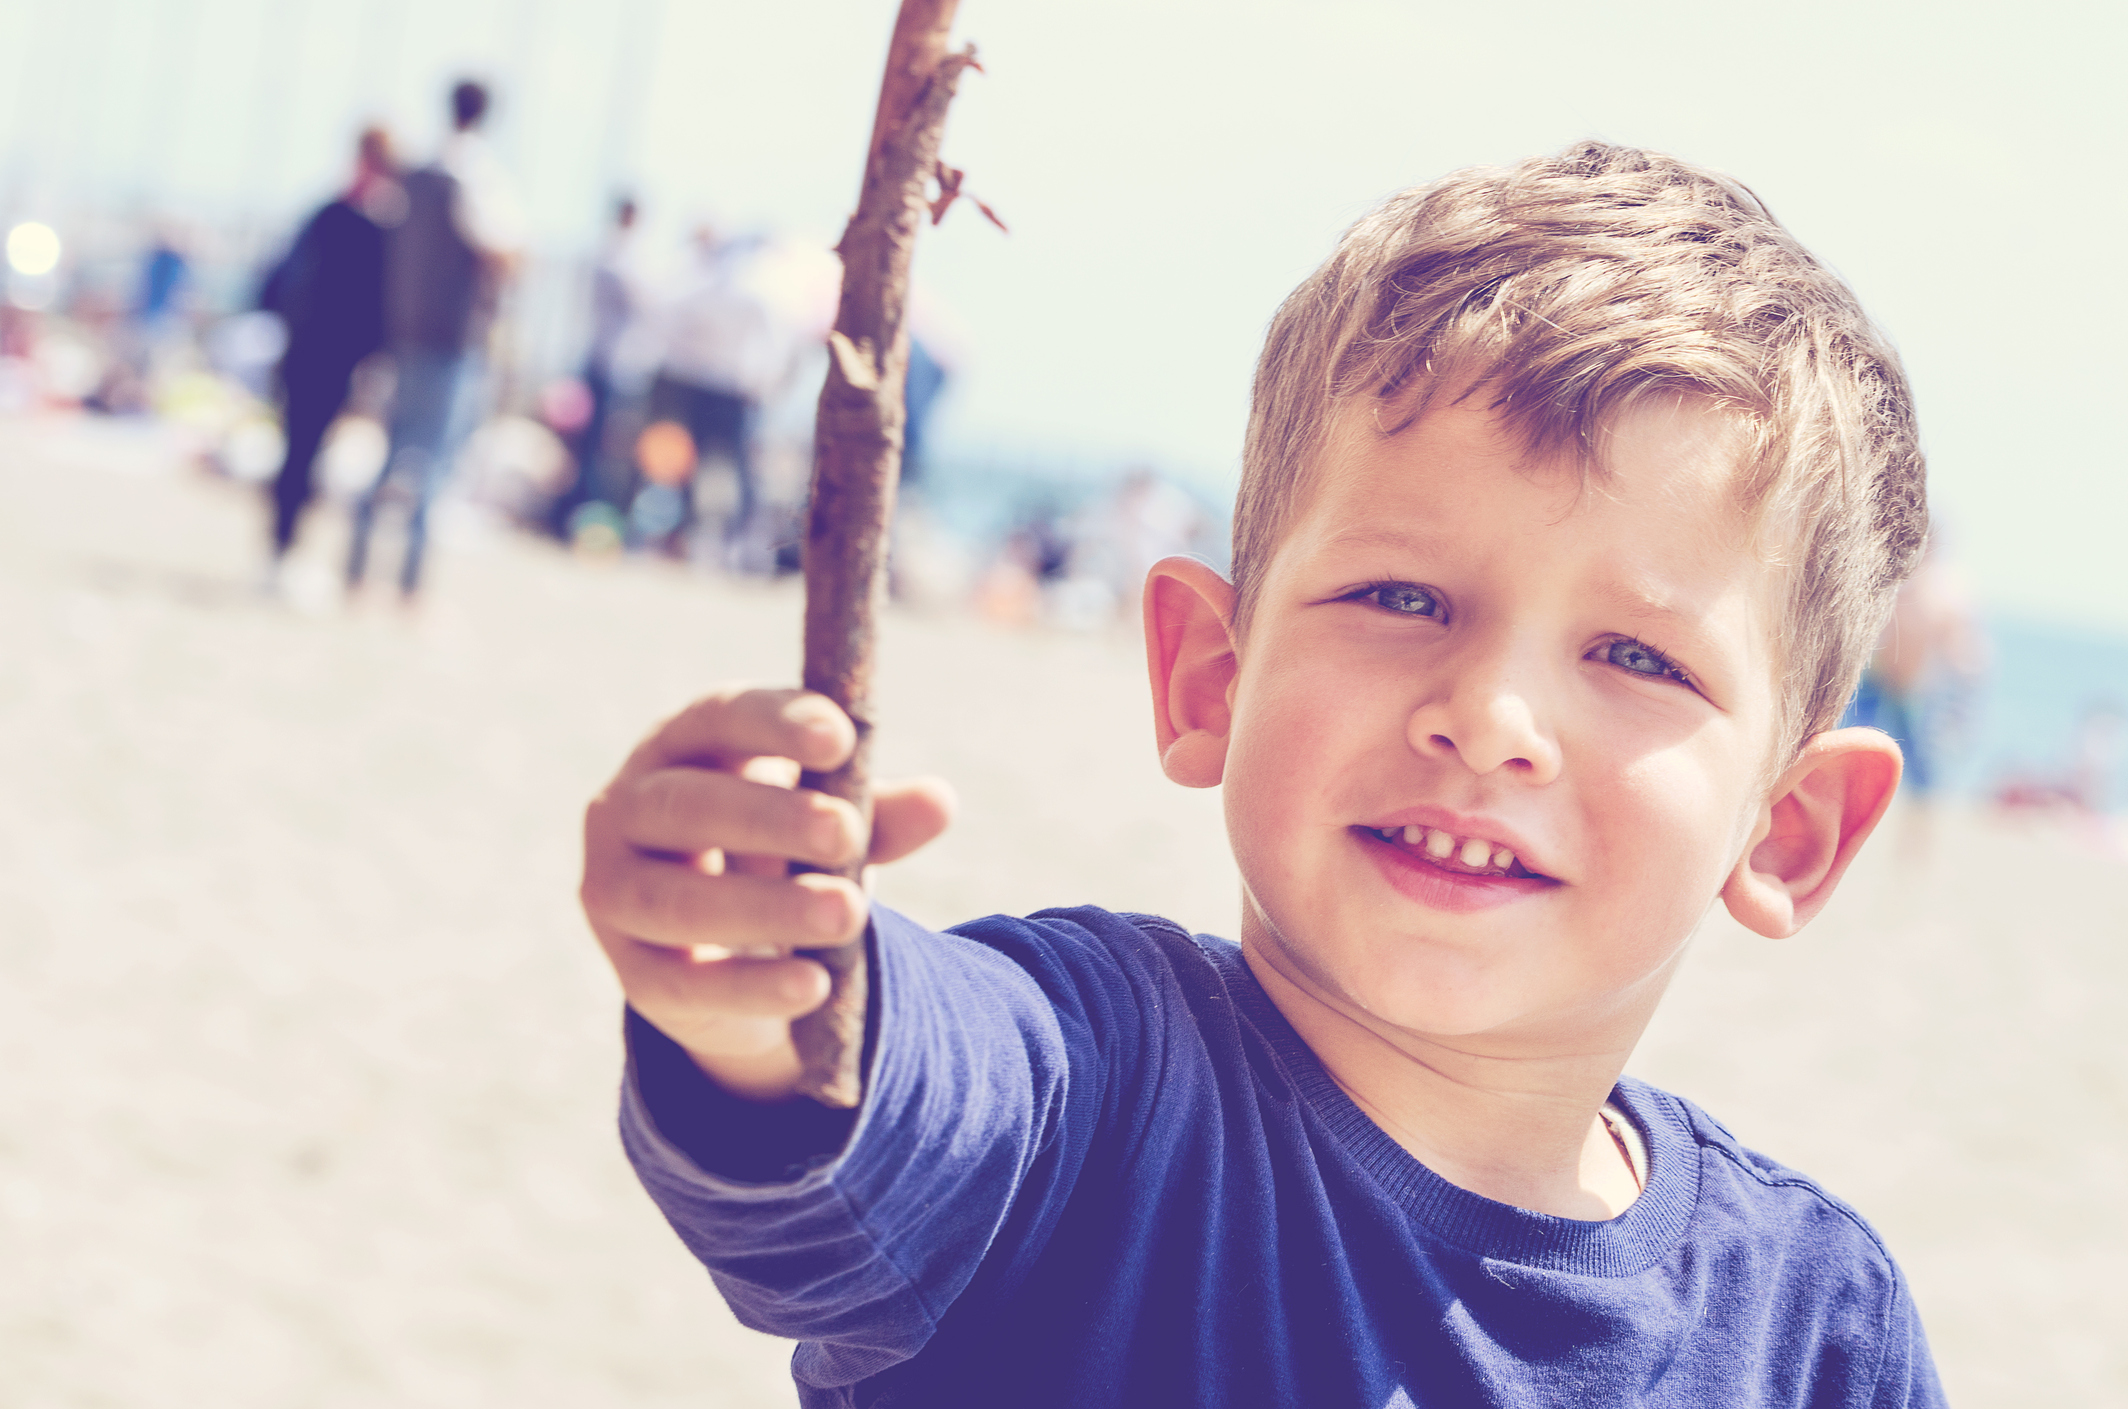 child gives you a stick while playing on the beach on a beautiful sunny spring day